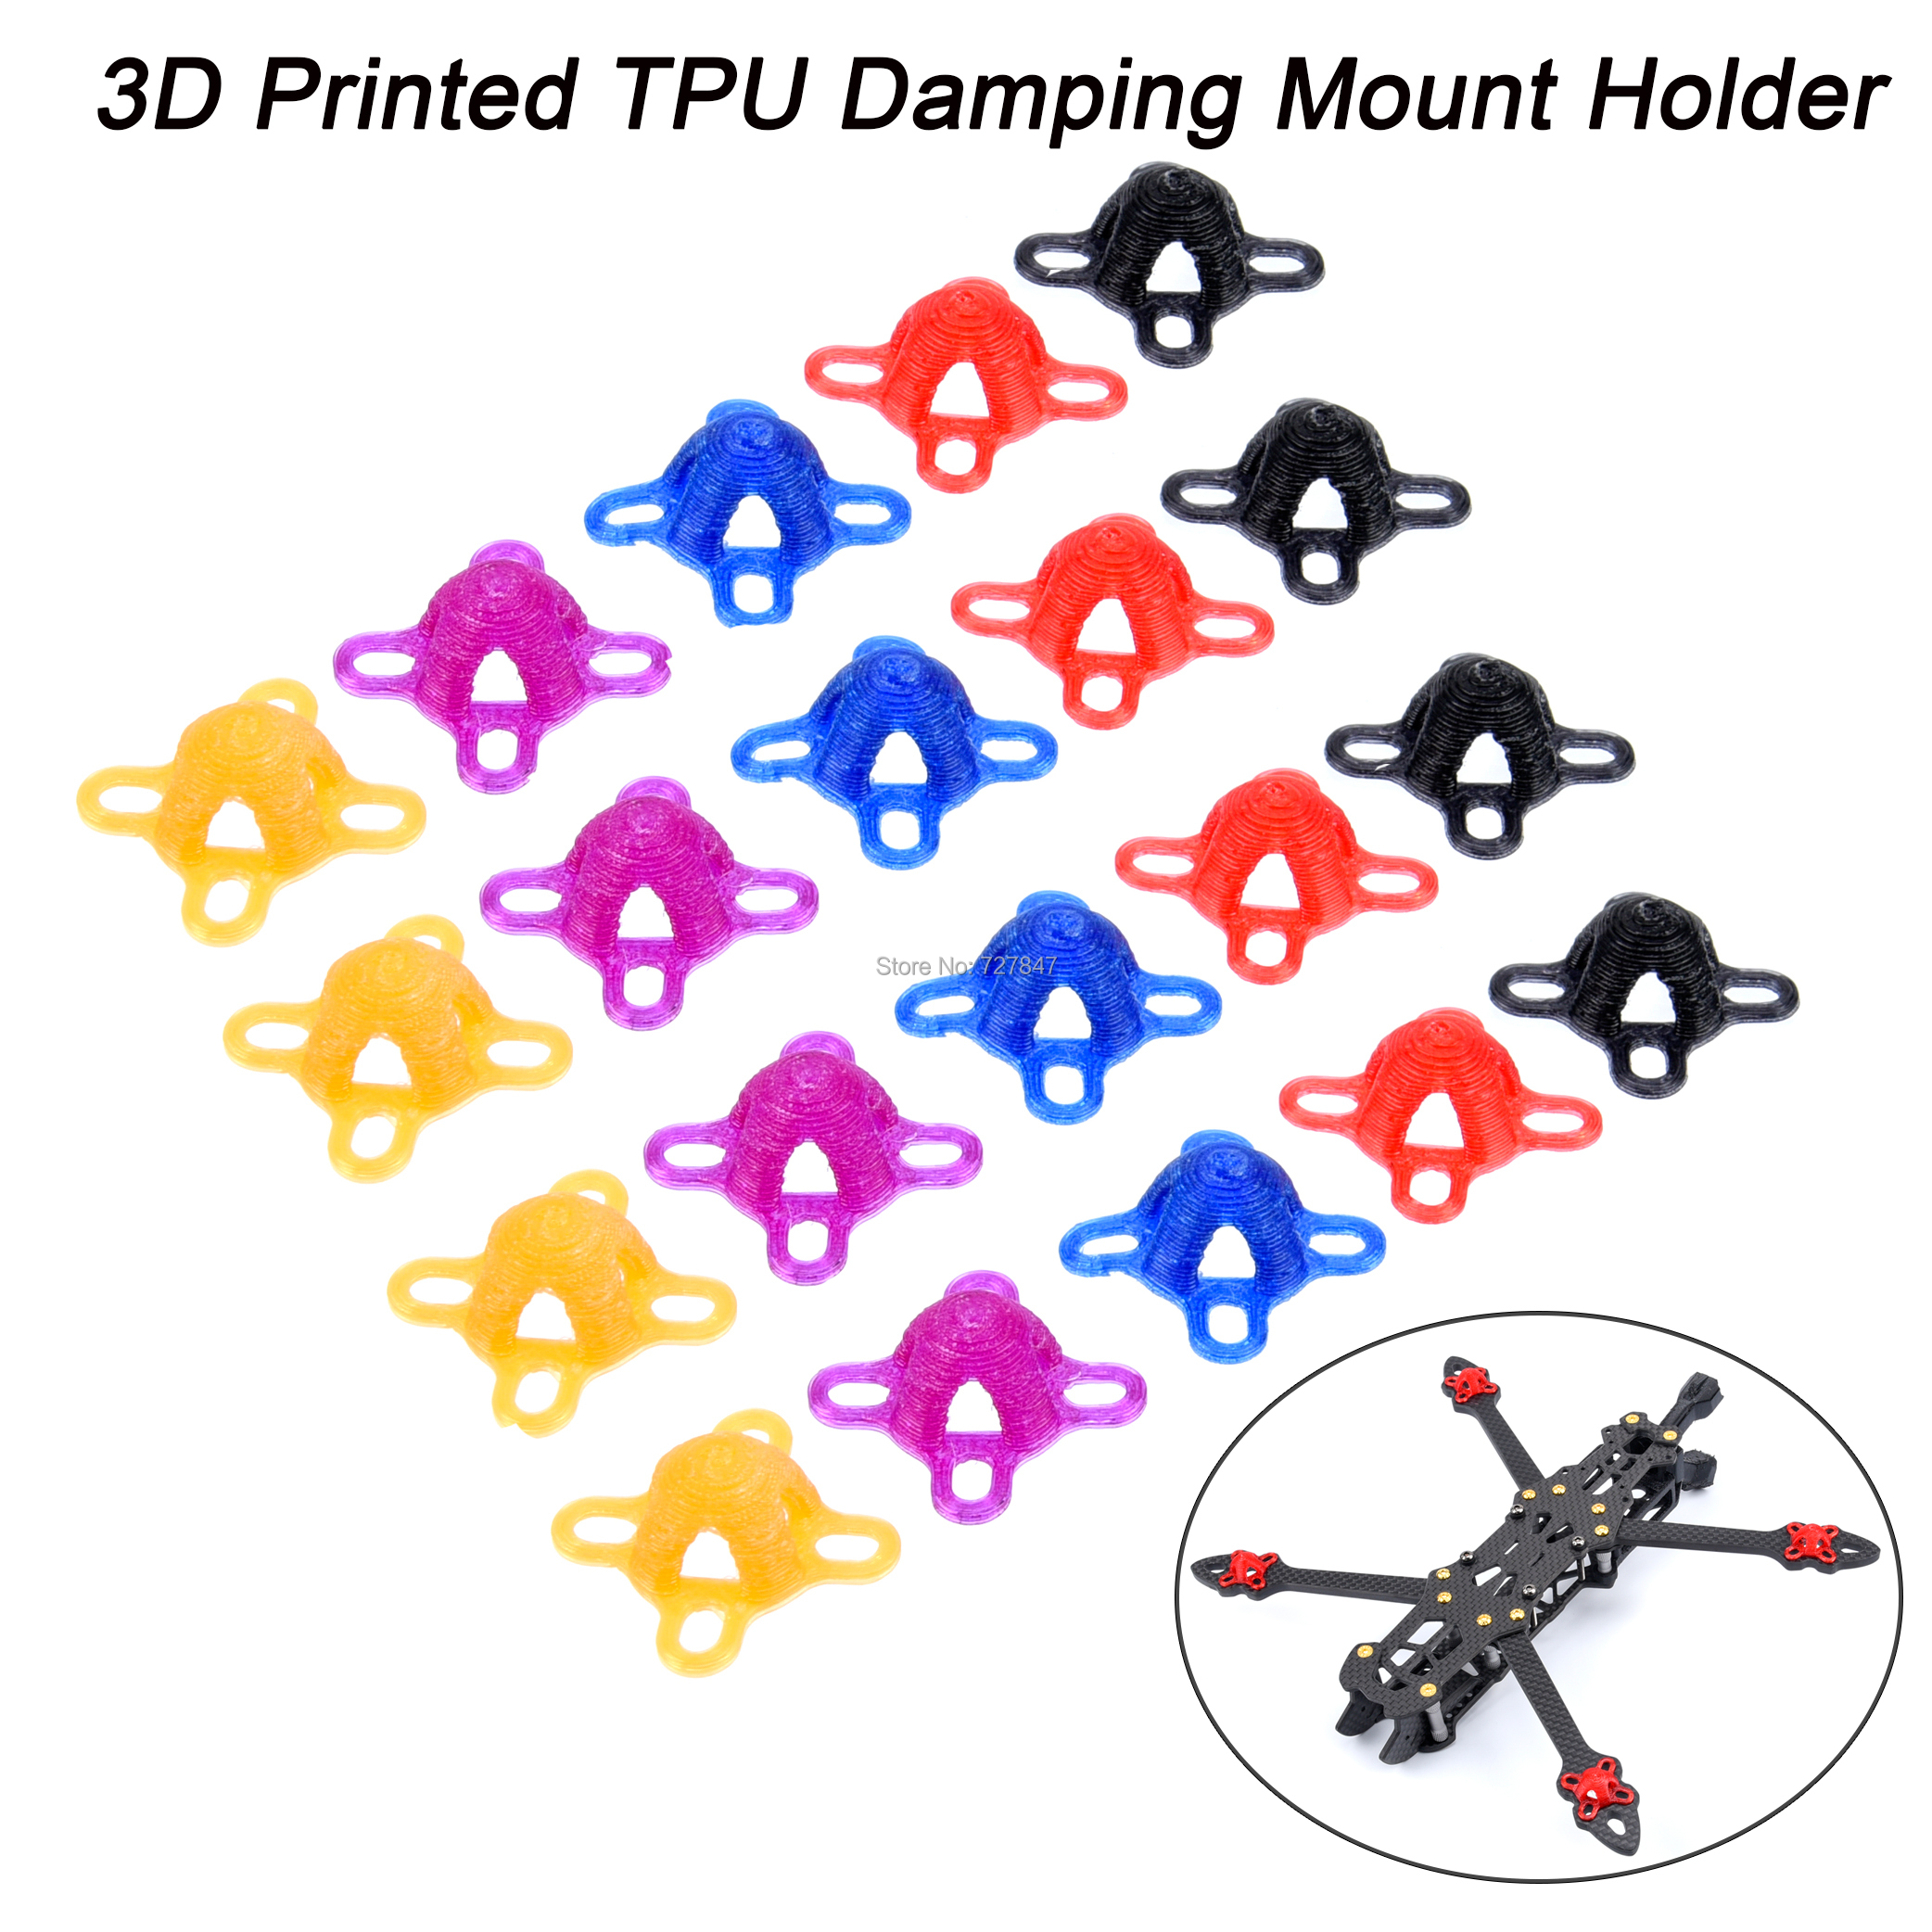 4PCS 3D Printed TPU Damping Mount Holder For 16x16 22 Series Brushless Motor Mark2 / Mark4 / LC7 RC Drone FPV Racing Spare Parts